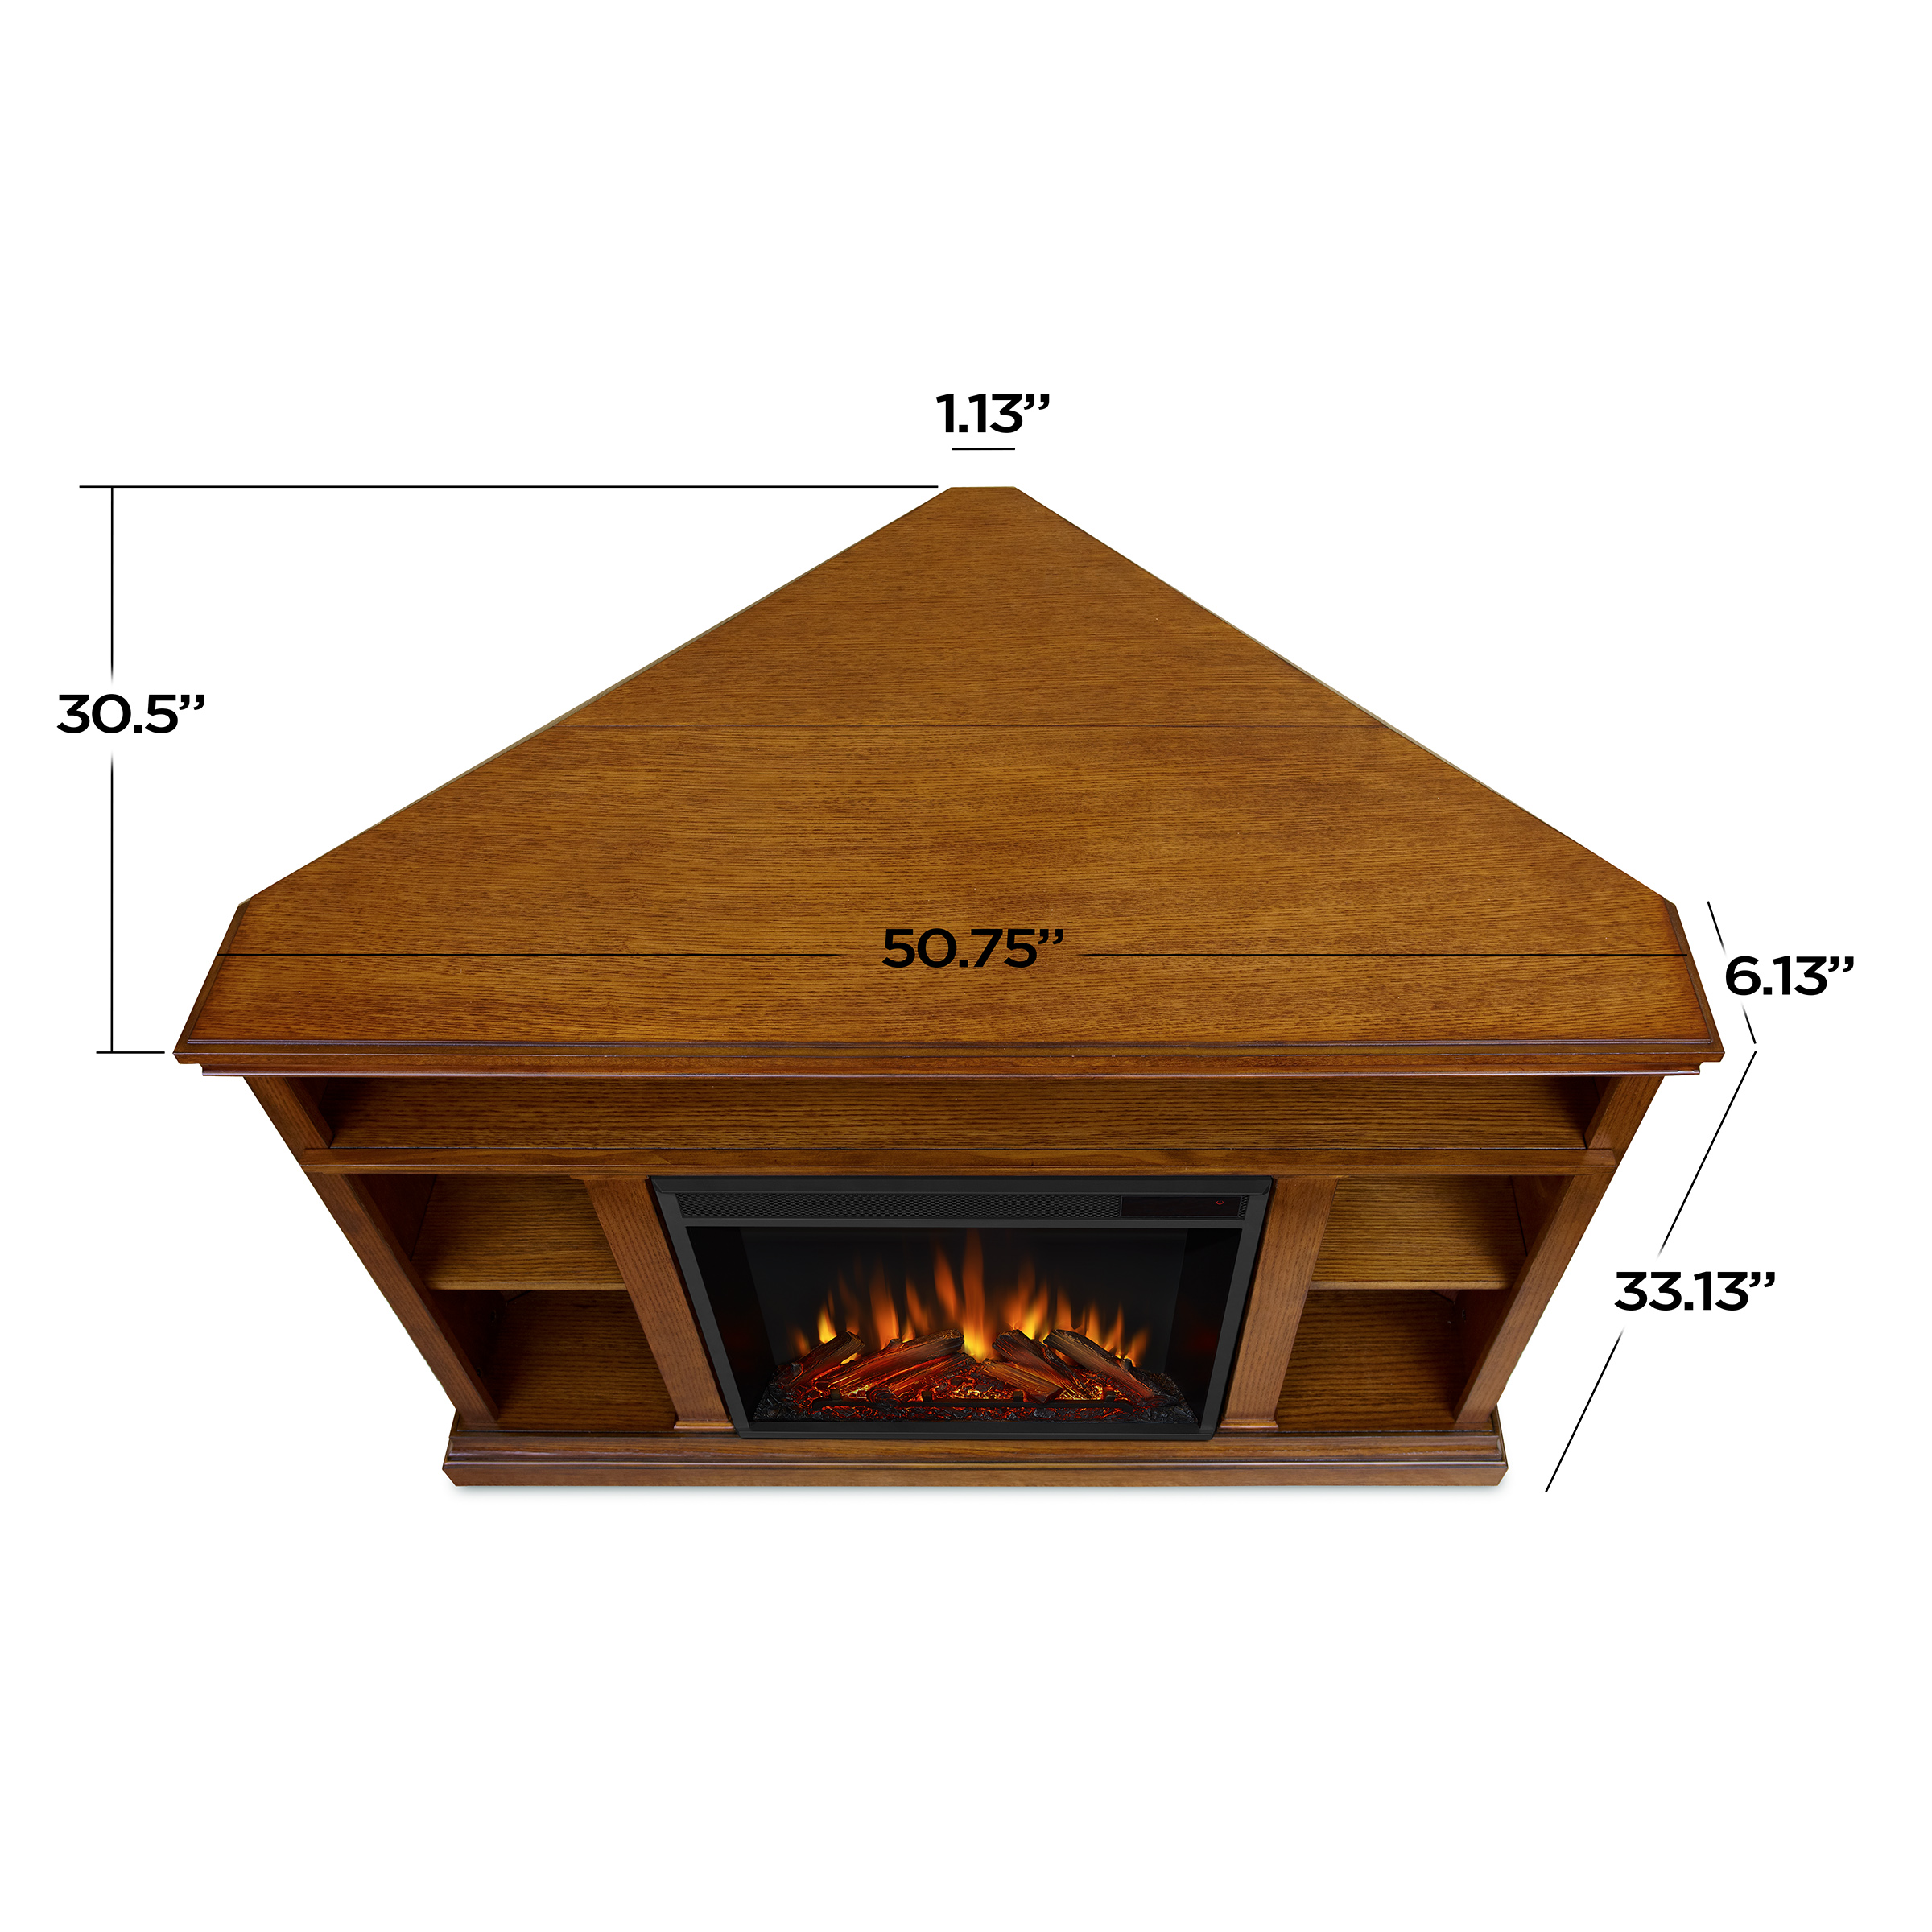 Electric Fireplace Dimensions